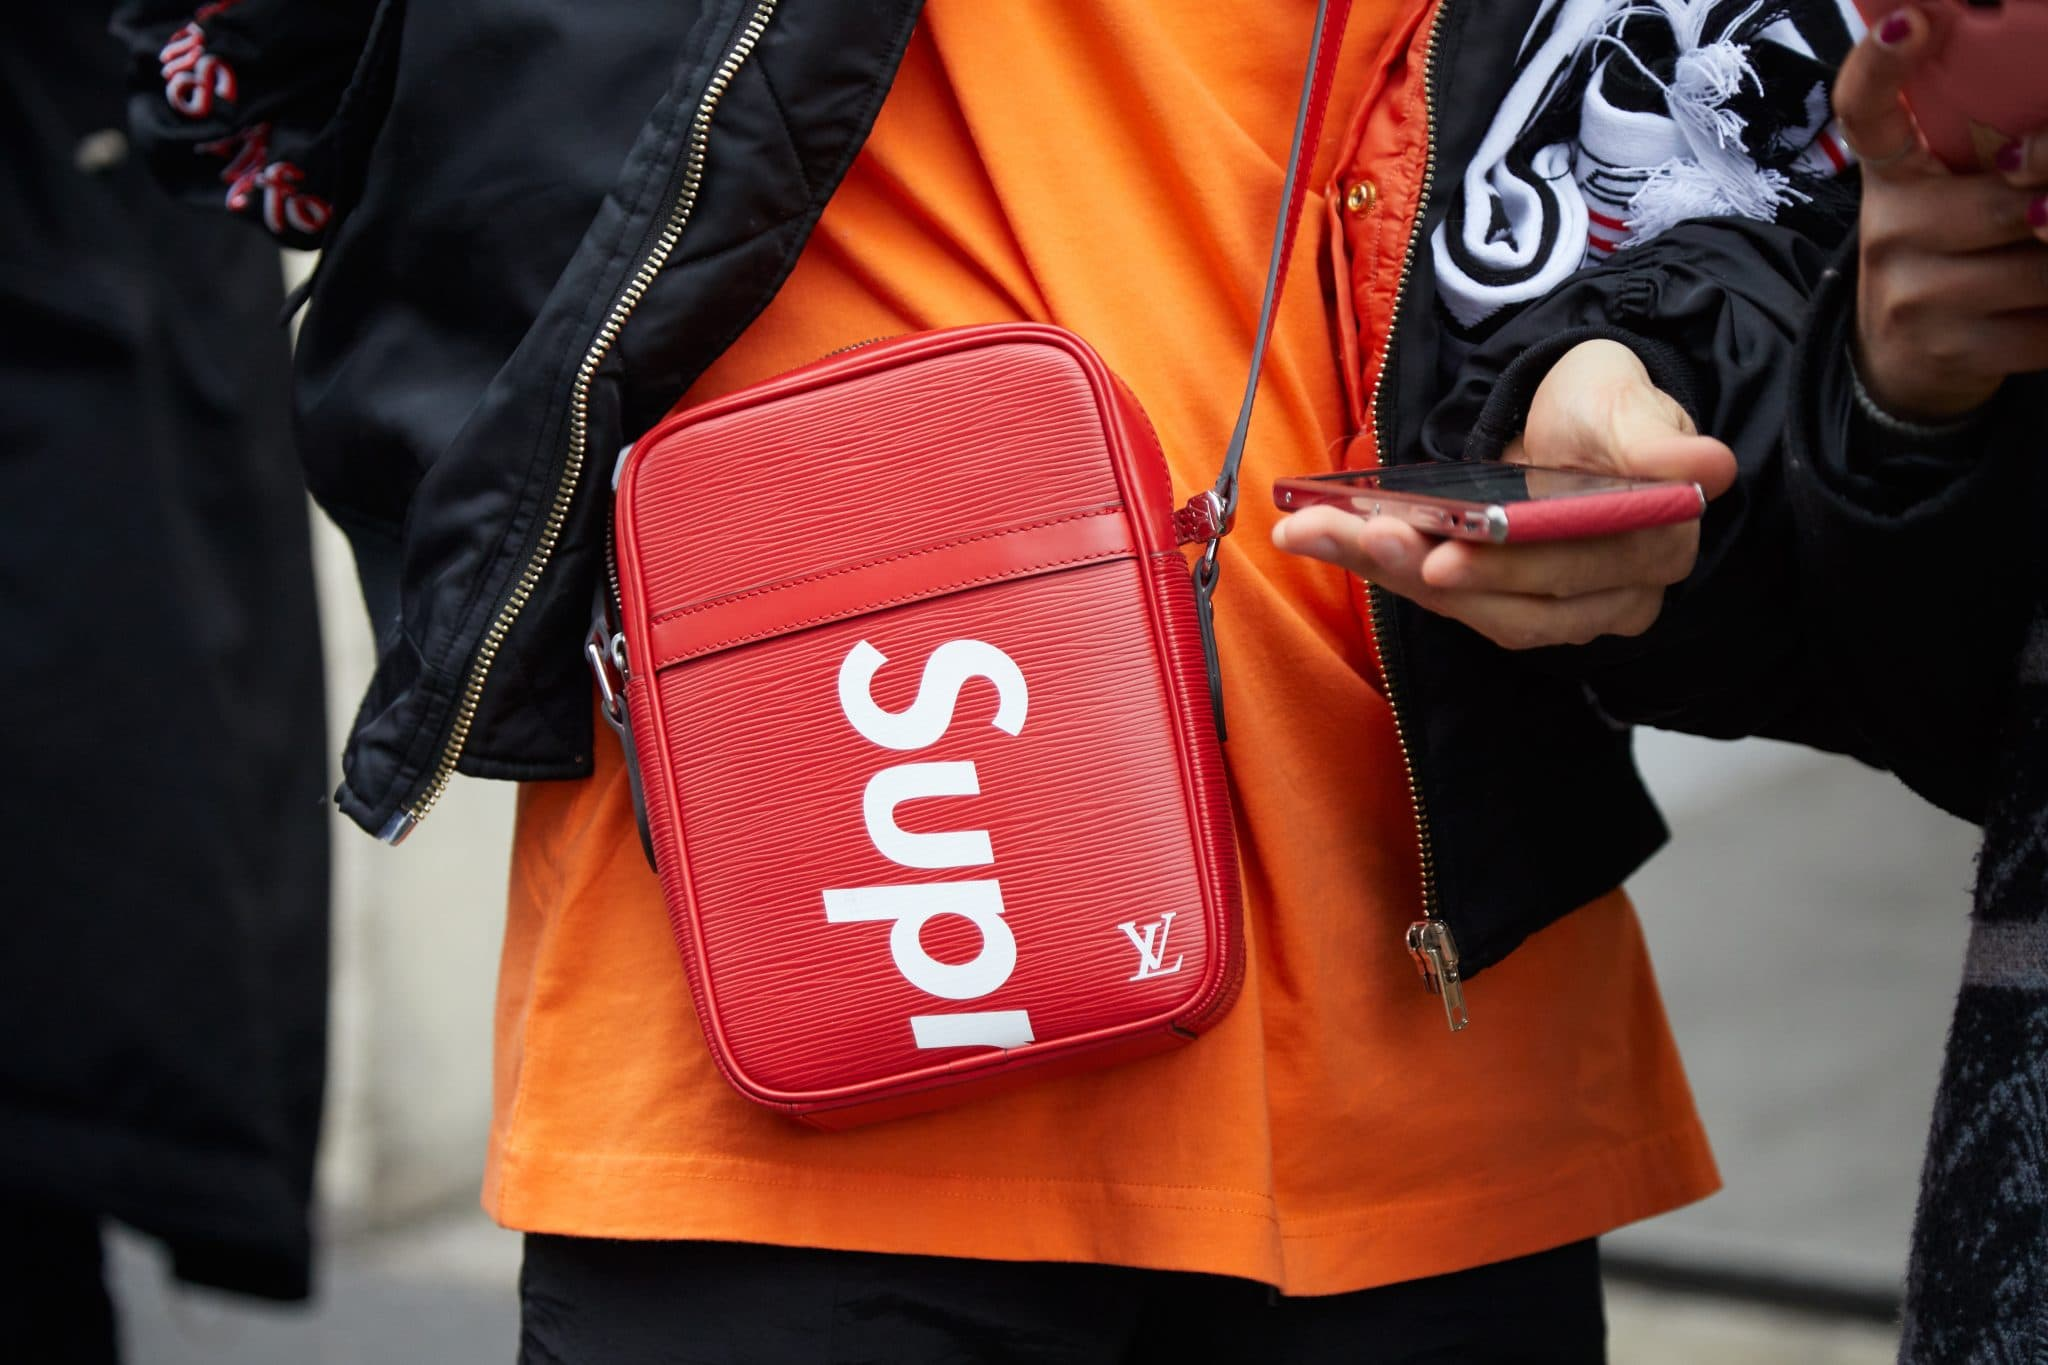 MILAN - JANUARY 15: Man with orange shirt and red Louis Vuitton Supreme bag looking at phone before Represent fashion show, Milan Fashion Week street style on January 15, 2018 in Milan.